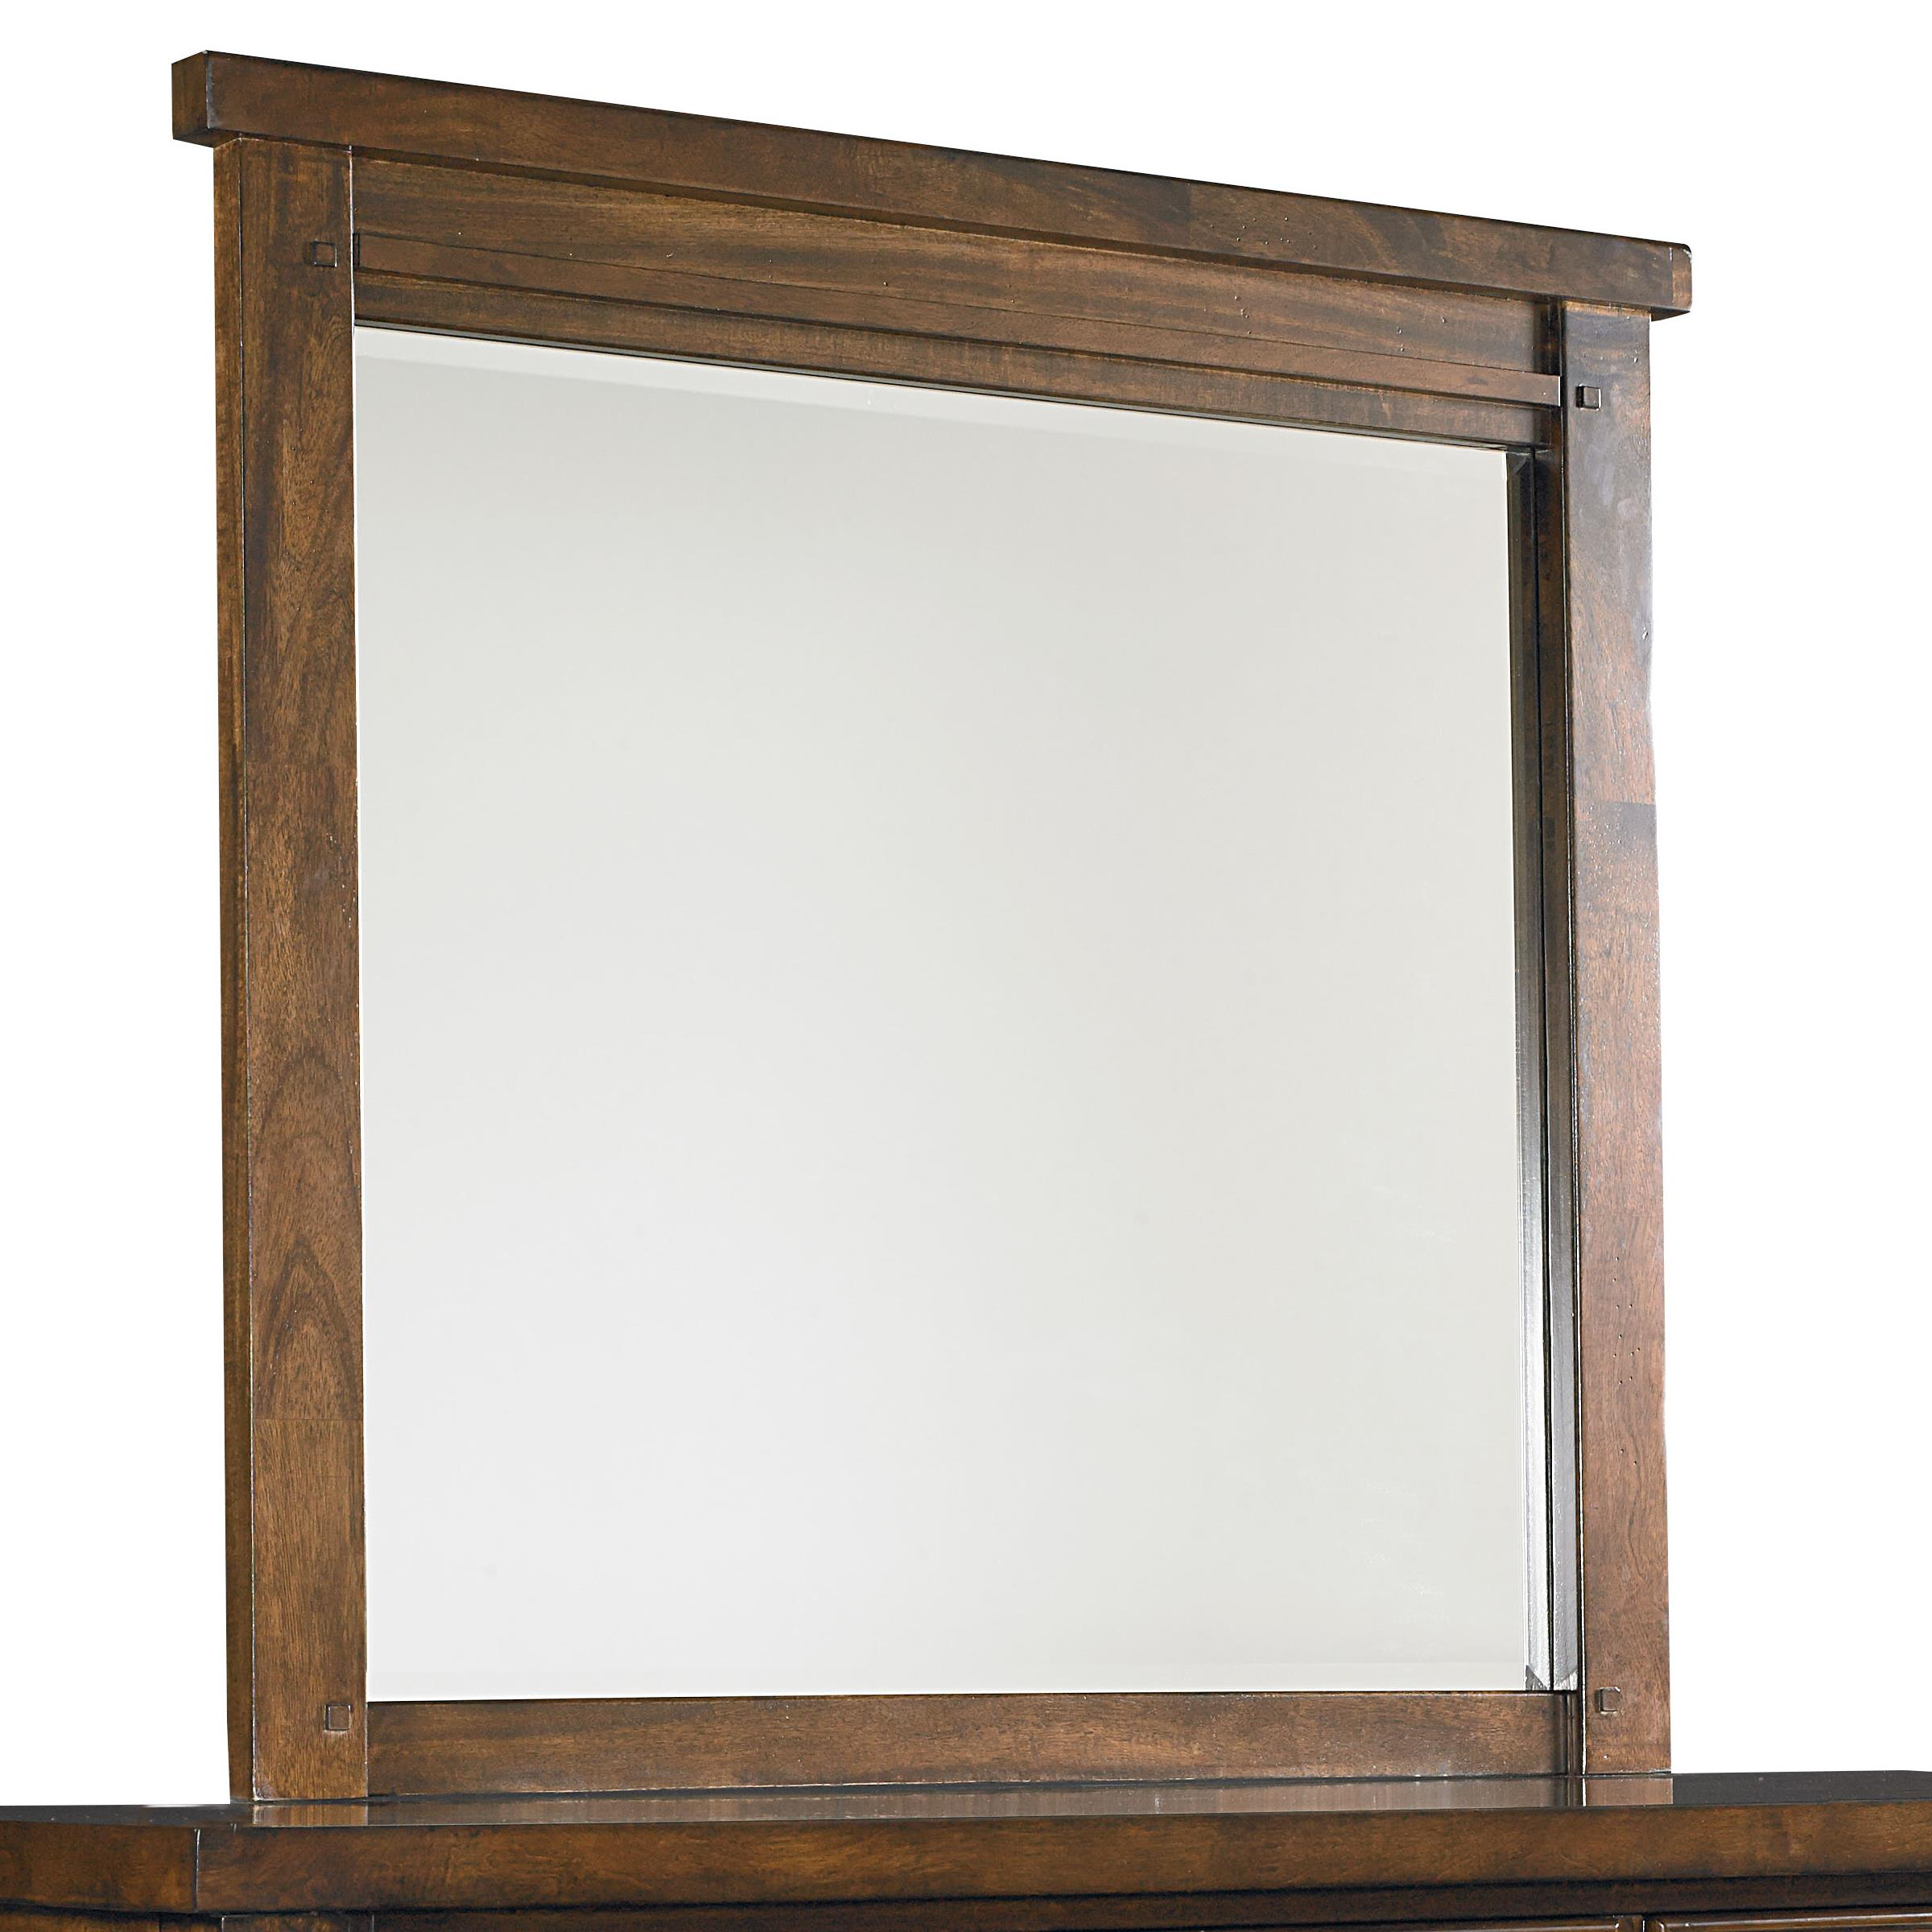 Standard Furniture Cameron Youth Mirror - Item Number: 94058